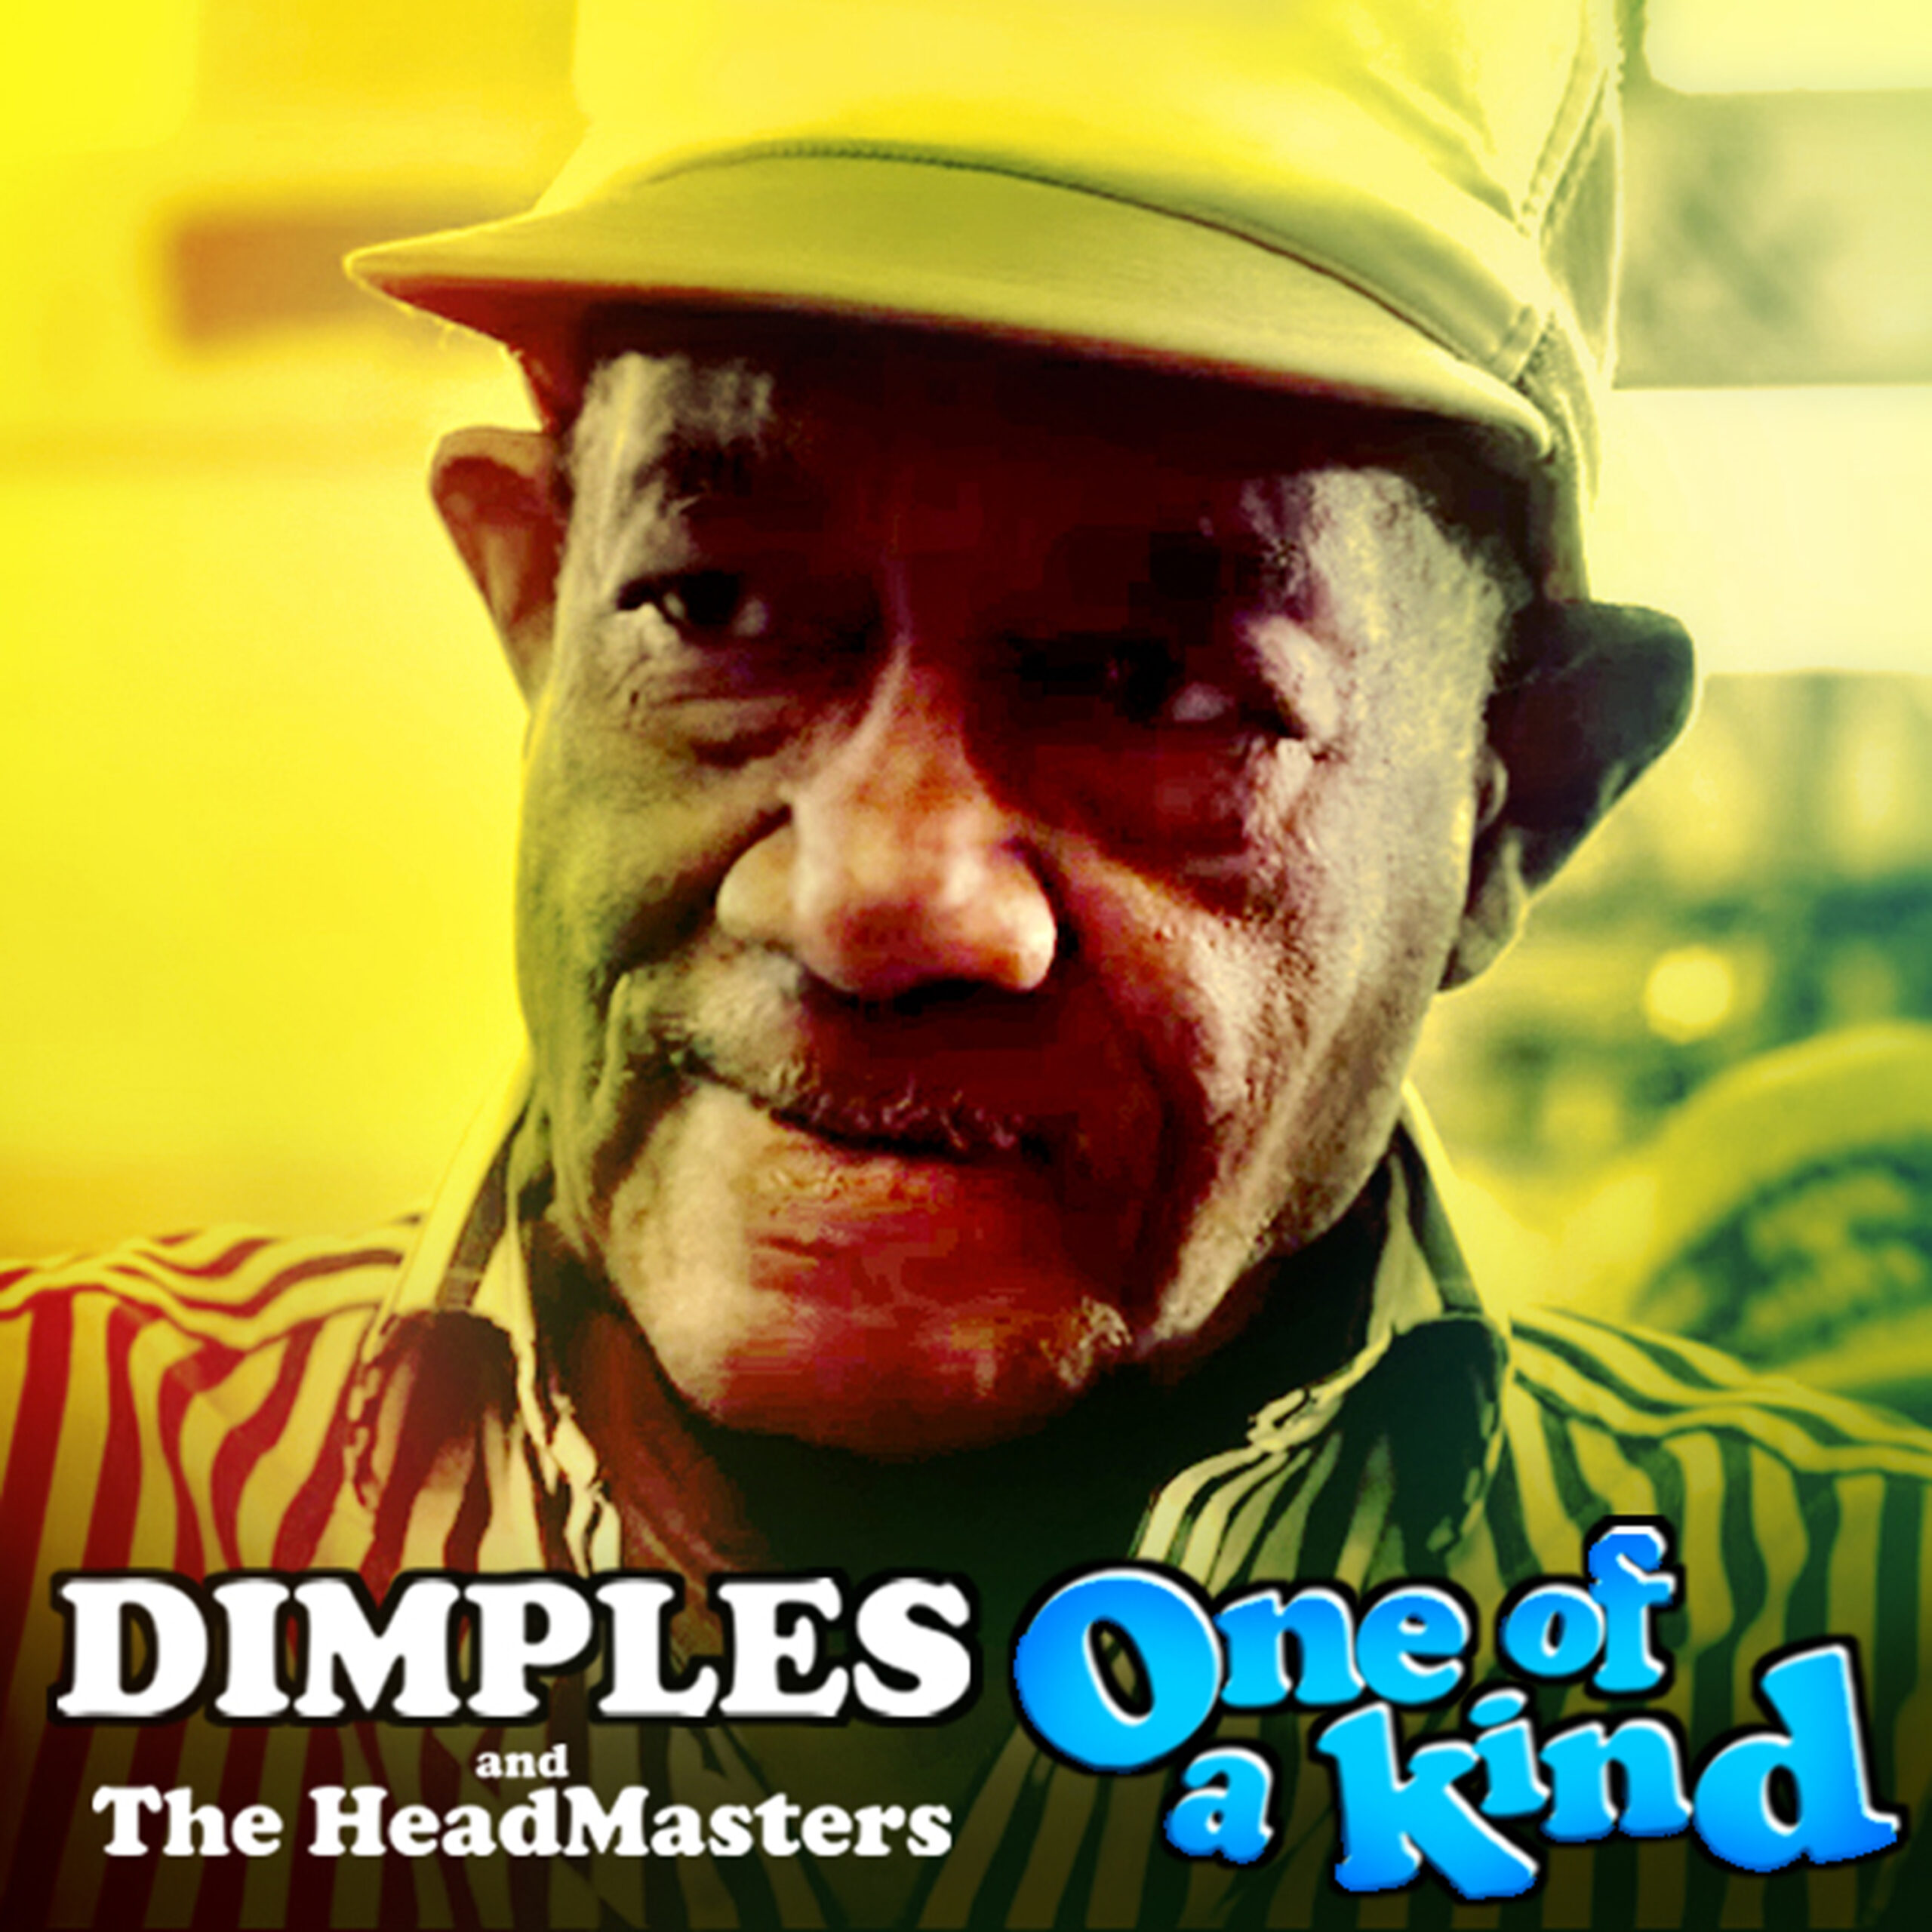 Dimples_One-Of-A-Kind_Slipway-Records